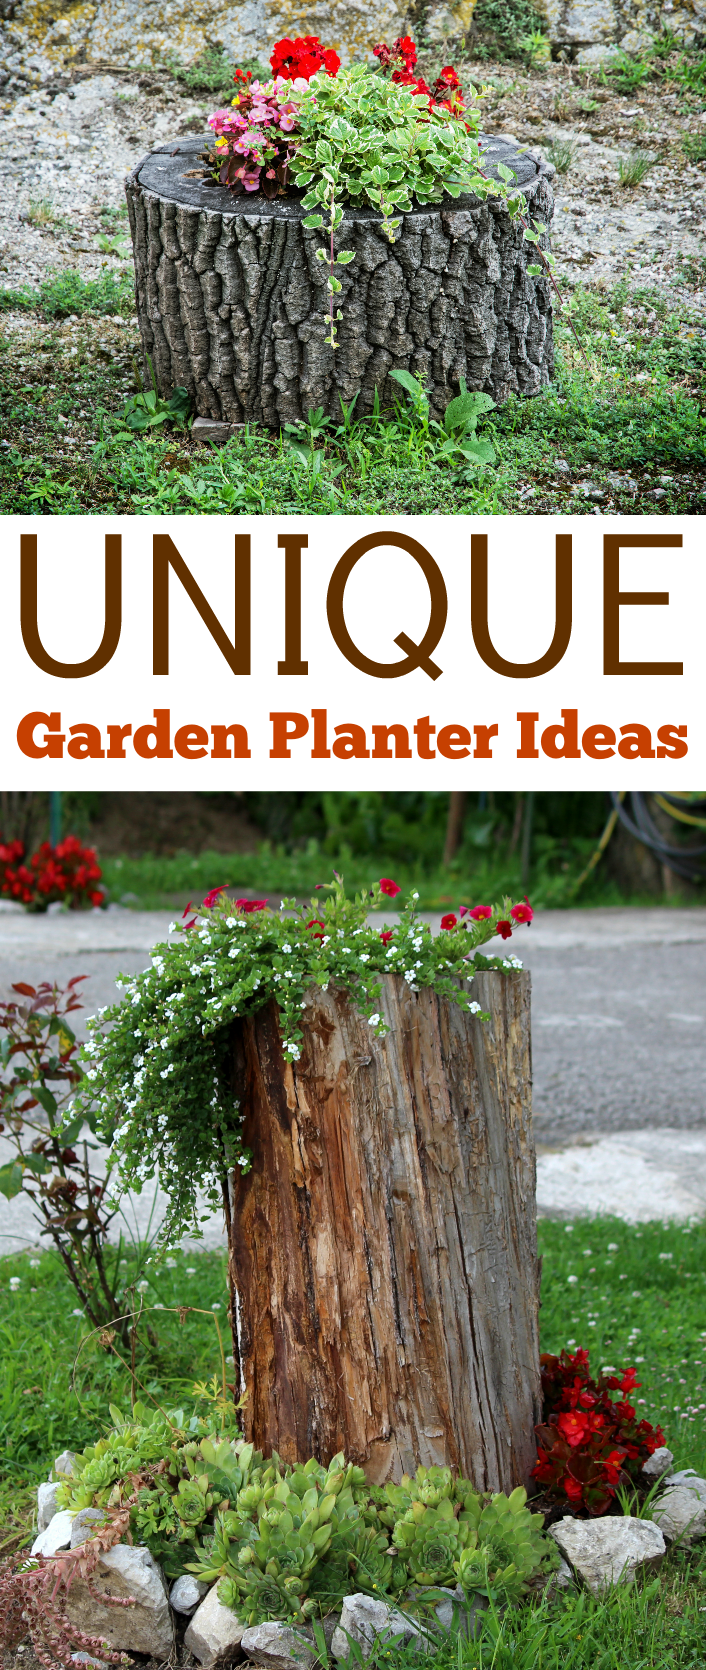 Unique garden planter ideas